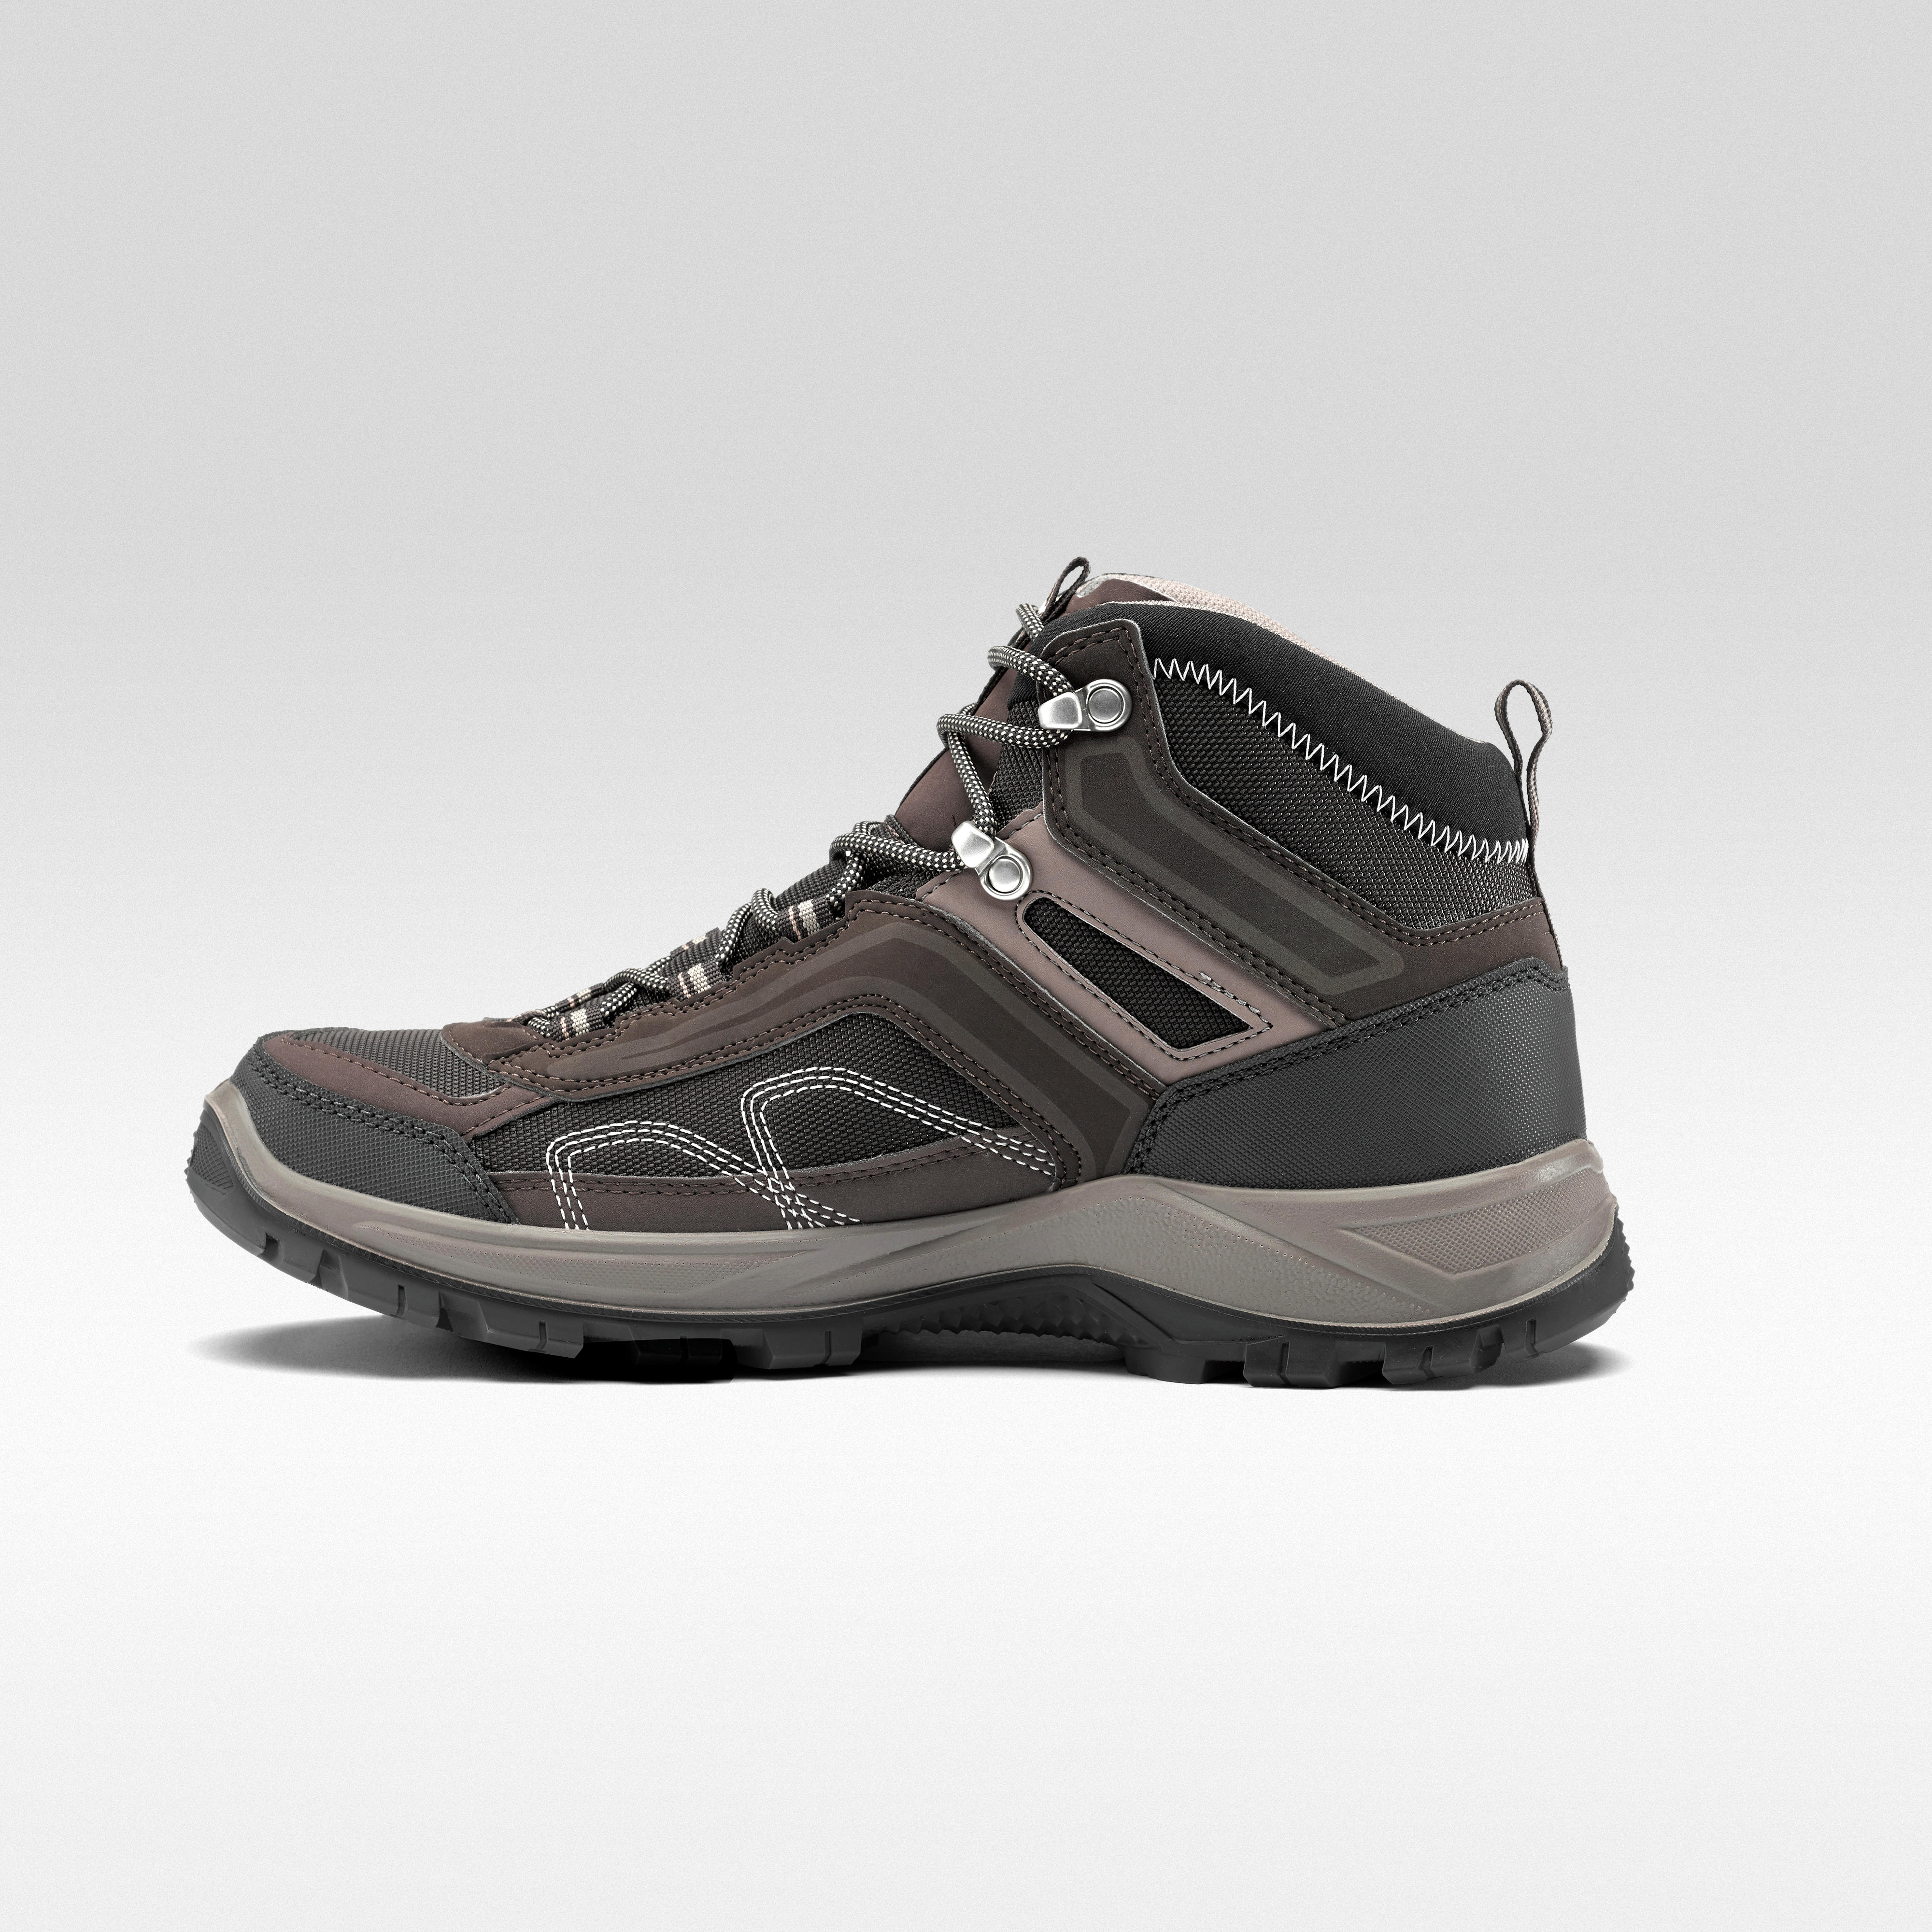 Men's Waterproof Hiking Shoes MH100 Mid - Brown